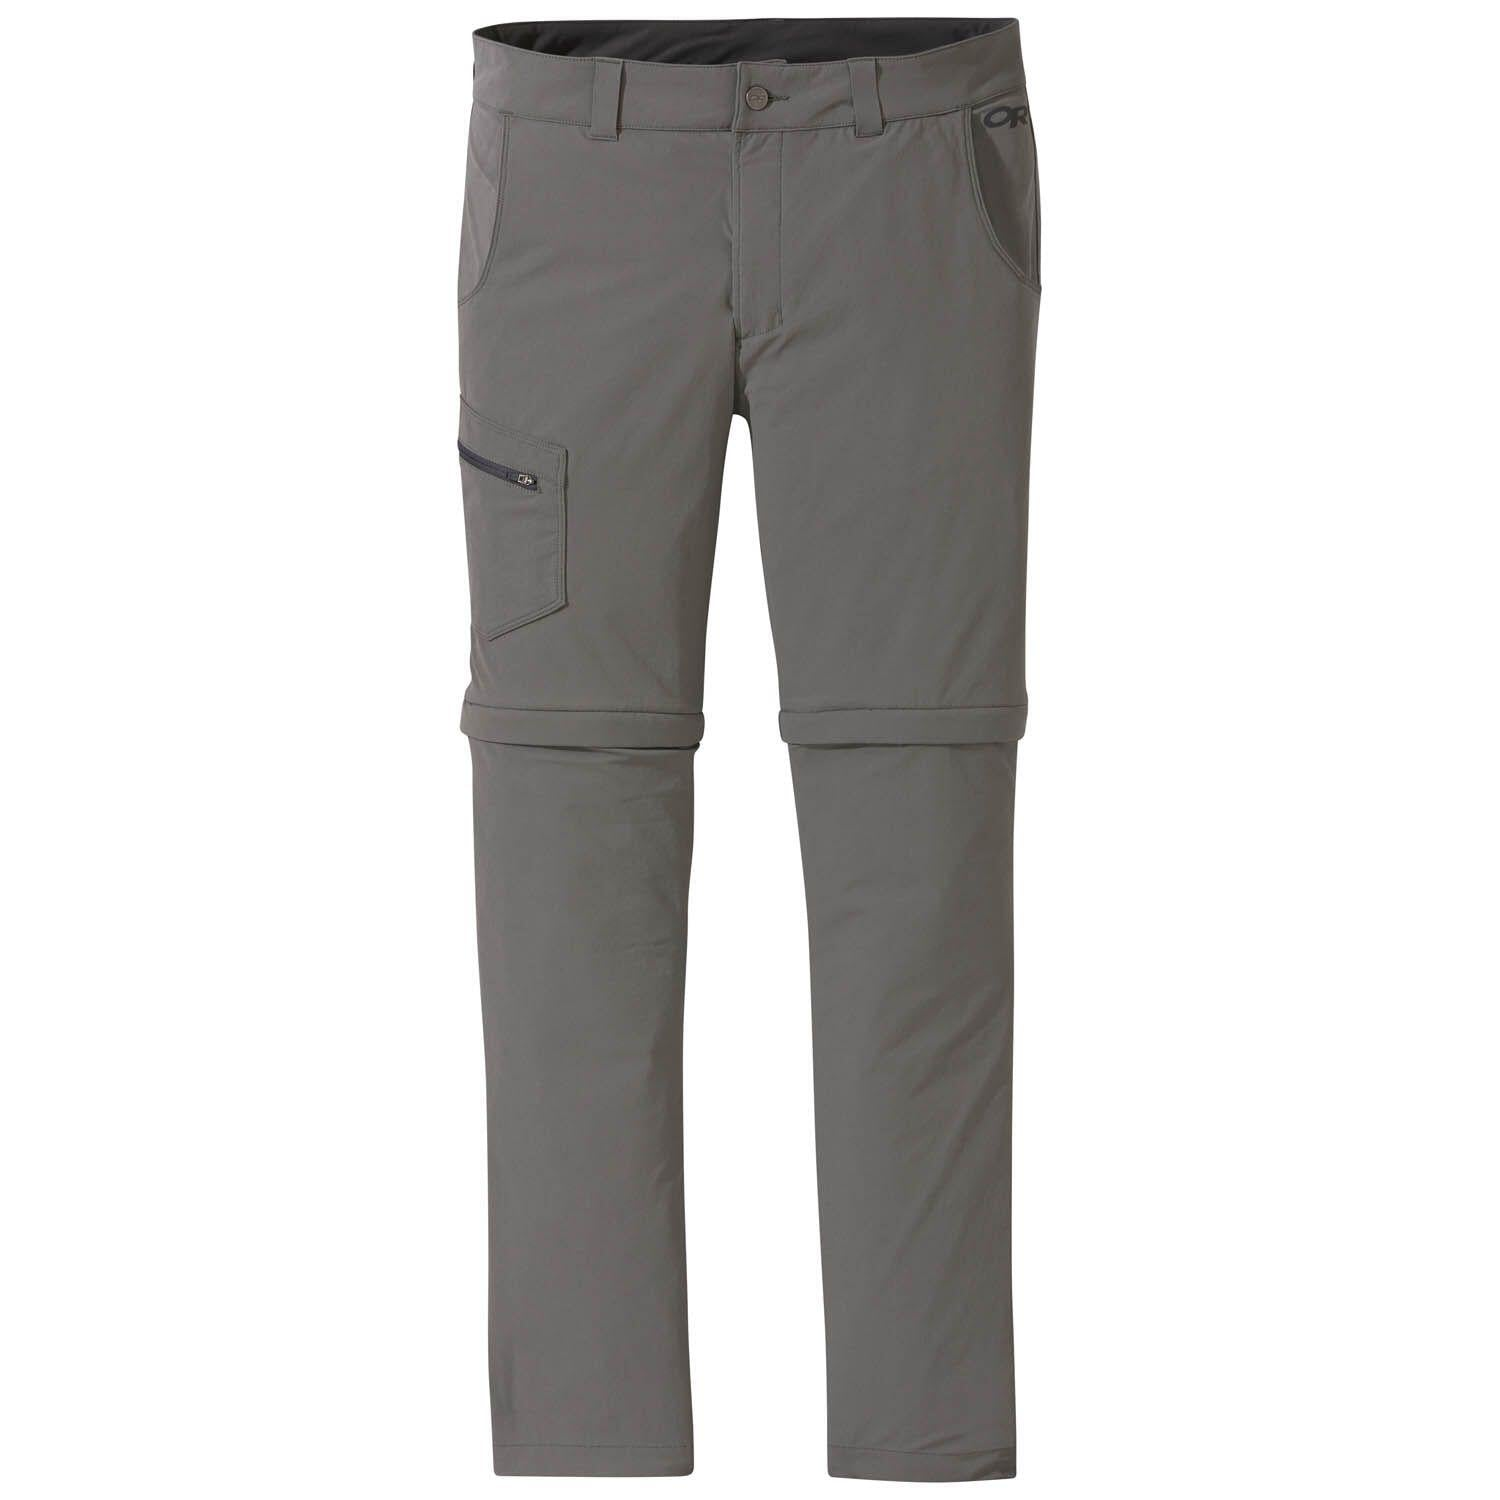 Outdoor Research Ferrosi Convertible Pants - Men's